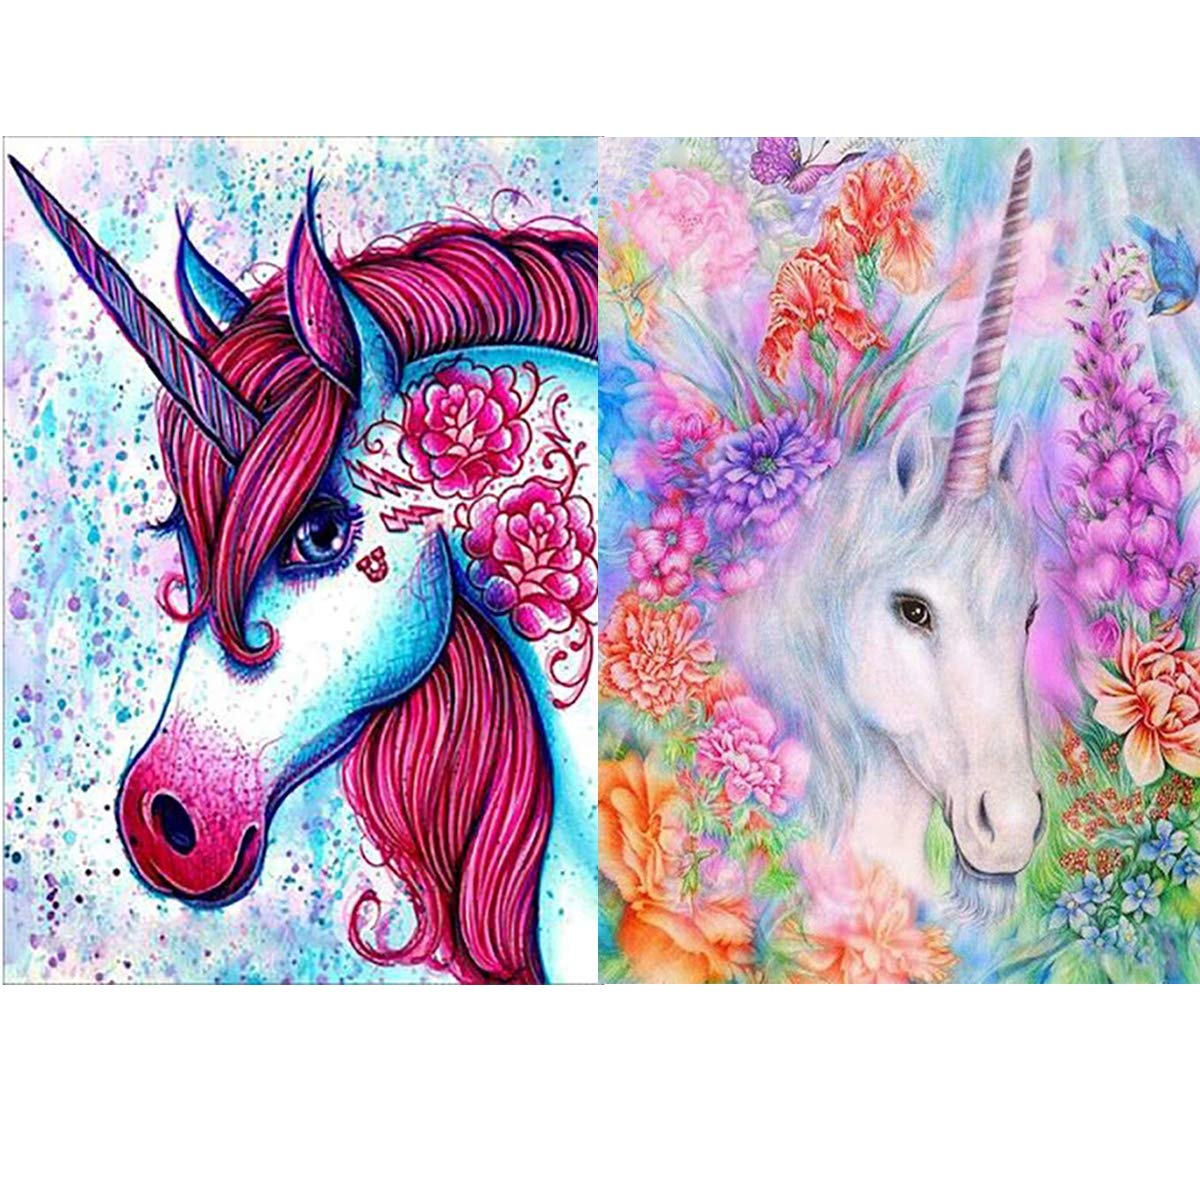 Unicorn 5D Diamond Painting by Number Kits, 2 Pack DIY Crystal Rhinestone  Diamond Embroidery Paintings Arts Craft for Wall Décor, Kids Gifts - Stress